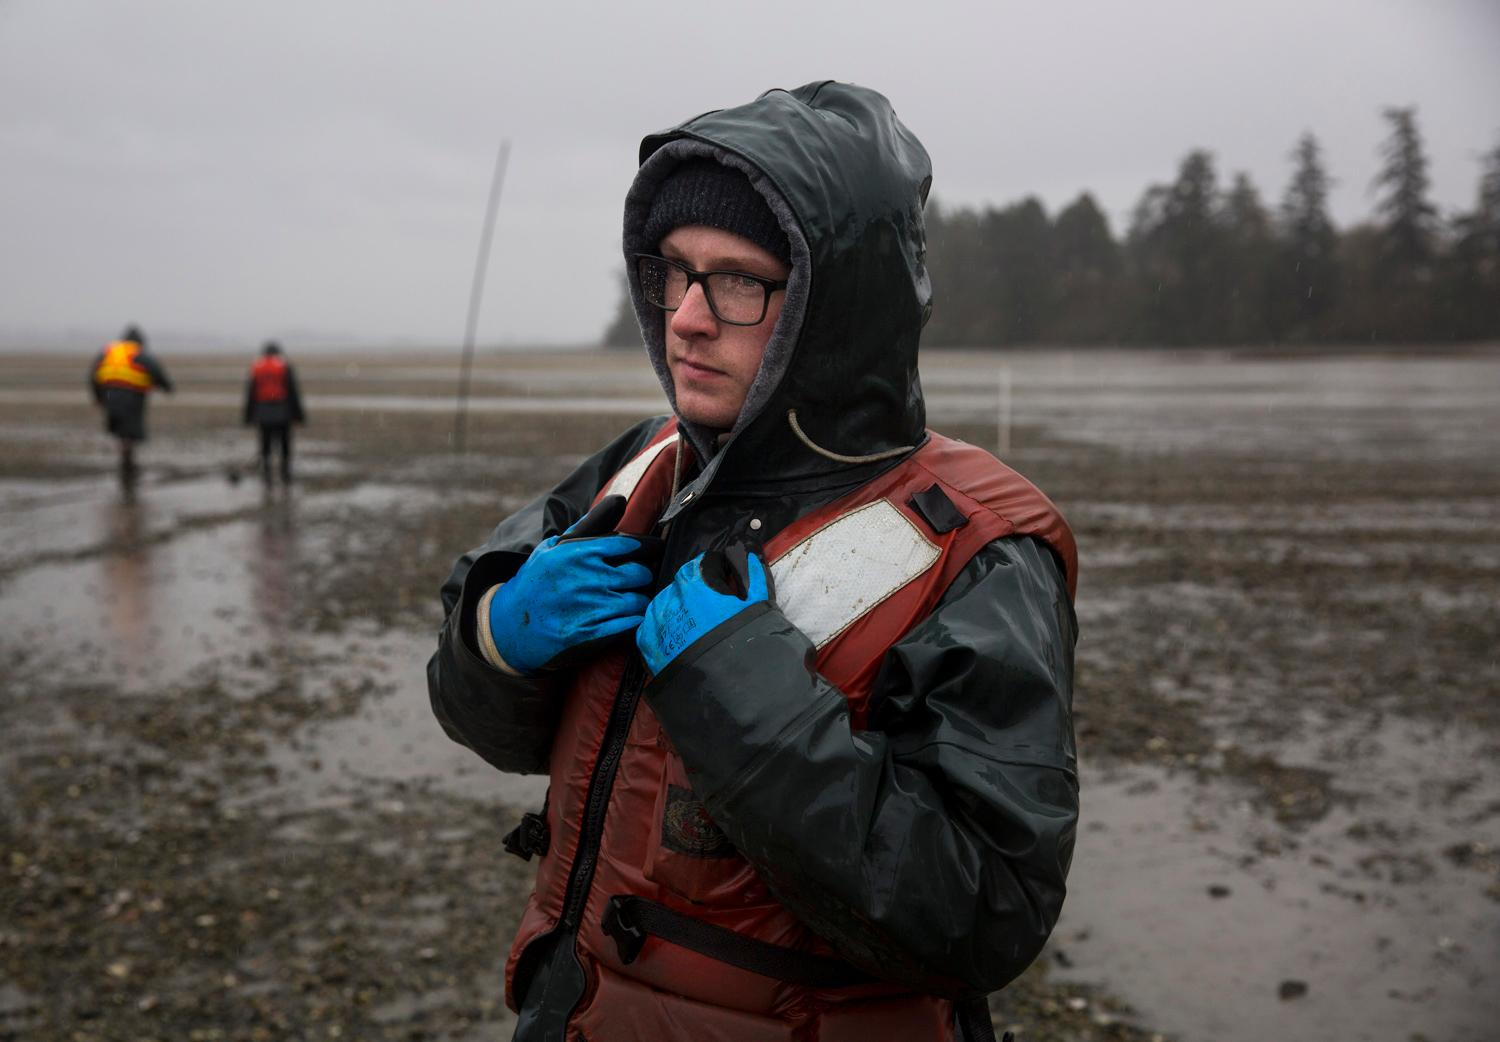 Samish flip bag farm manager Nolan Peltier stands in the cold as he waits to board a boat that will take him out to the oyster flats in Samish Bay. Taylor Shellfish Farms has its roots in shellfish farming in Washington State since the 1890s, and is now a proud leader of sustainable farming practices. You can try the tasty oysters at one of their oyster bars located in Queen Anne, Capitol Hill, Pioneer Square, or Bellevue. (Sy Bean / Seattle Refined)